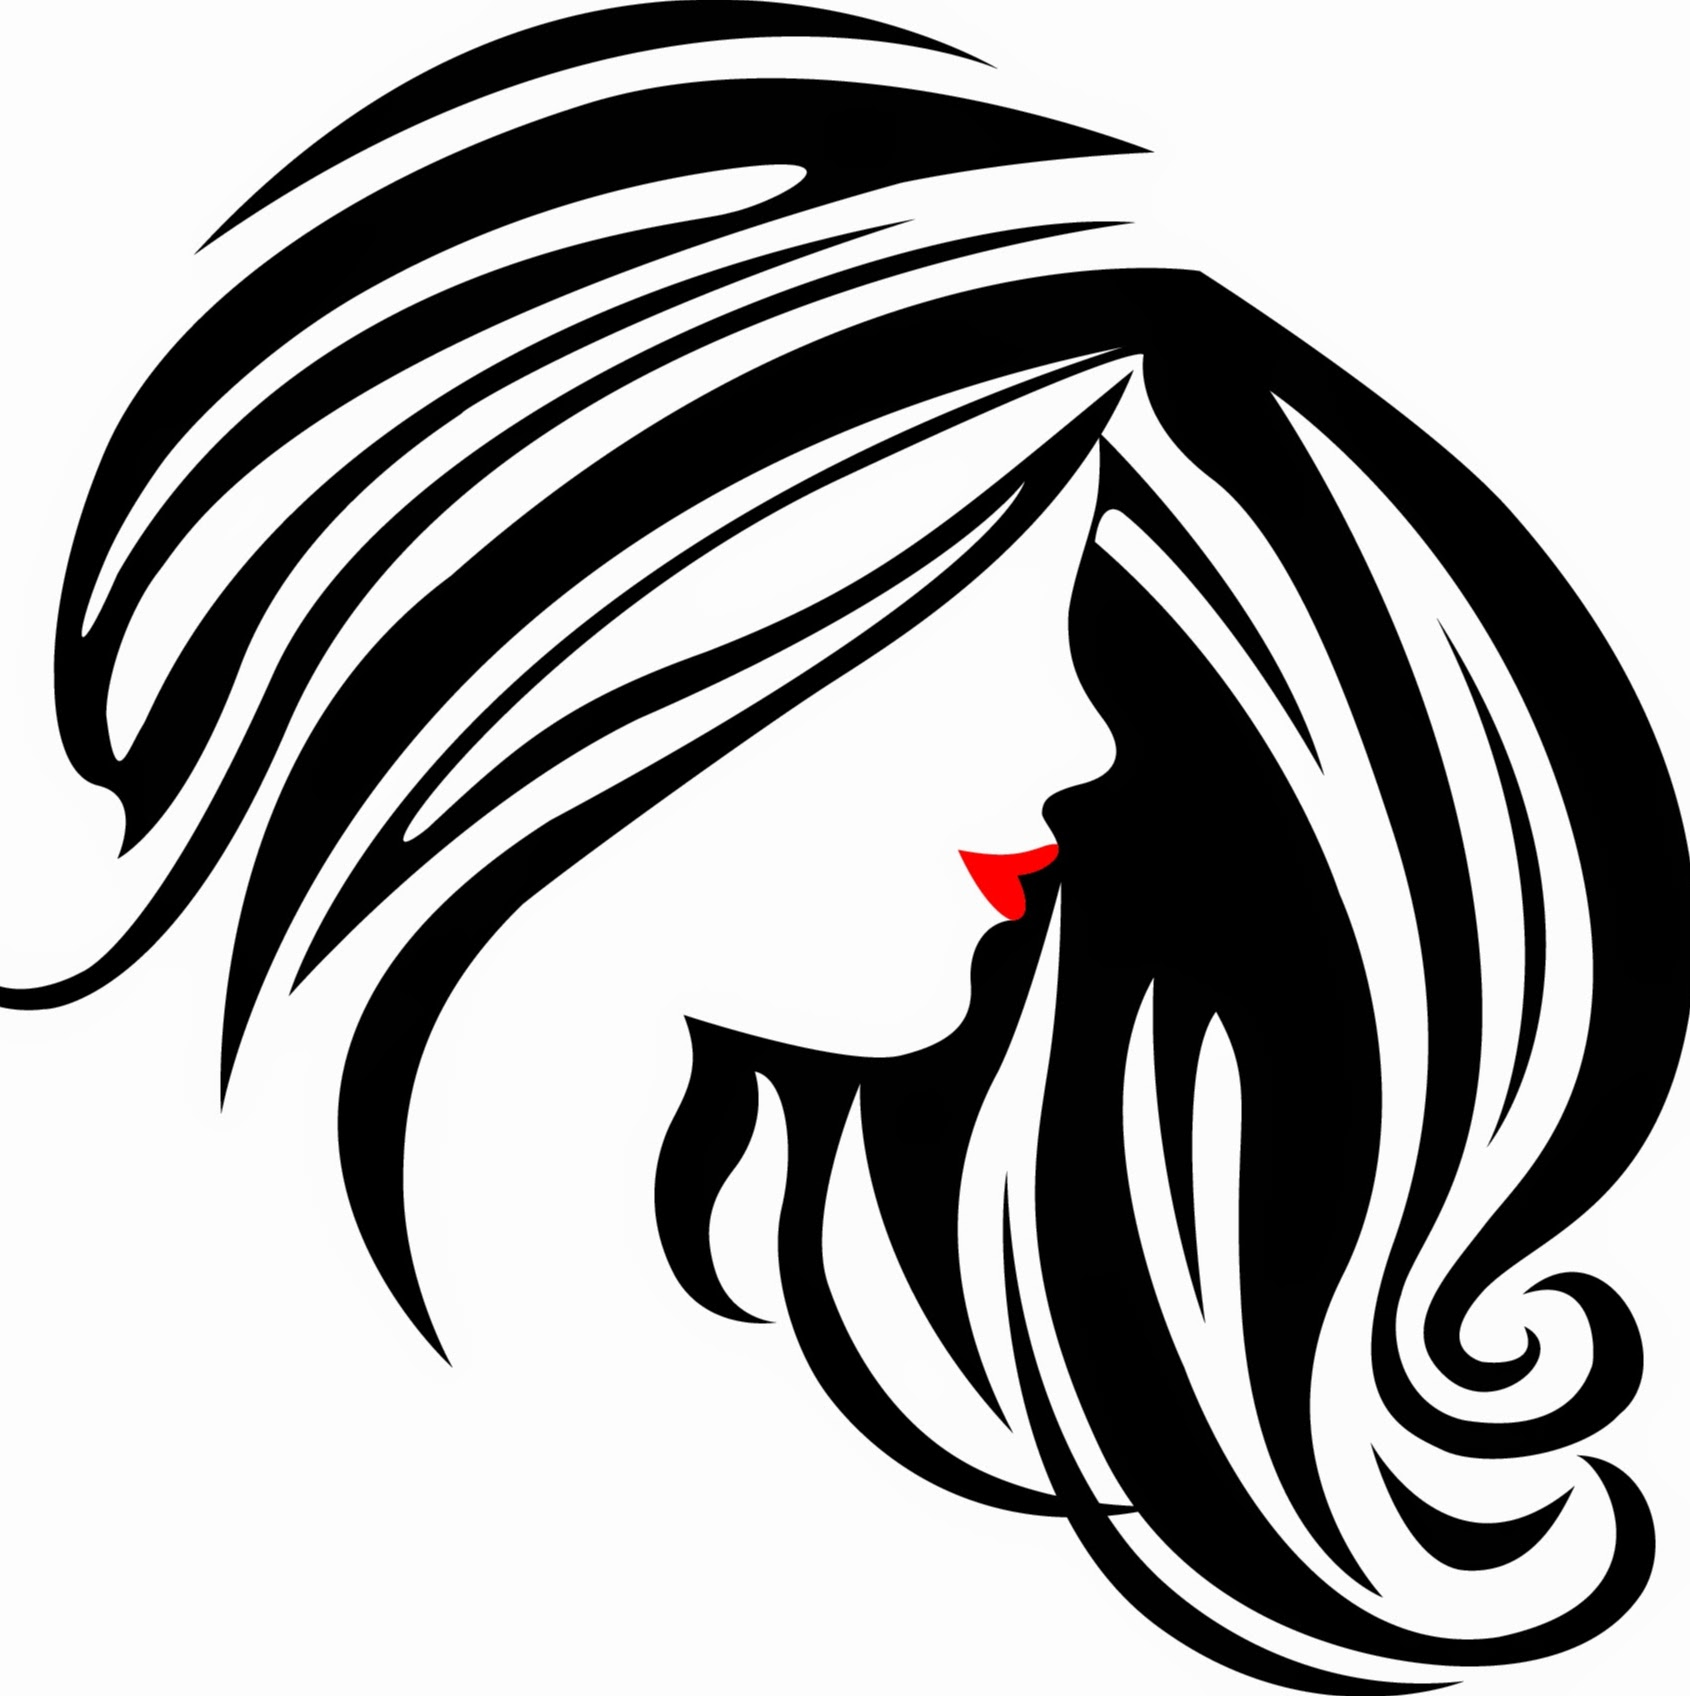 Clipart hair design graphic royalty free Free Hair Salon Clipart Black And White, Download Free Clip Art ... graphic royalty free